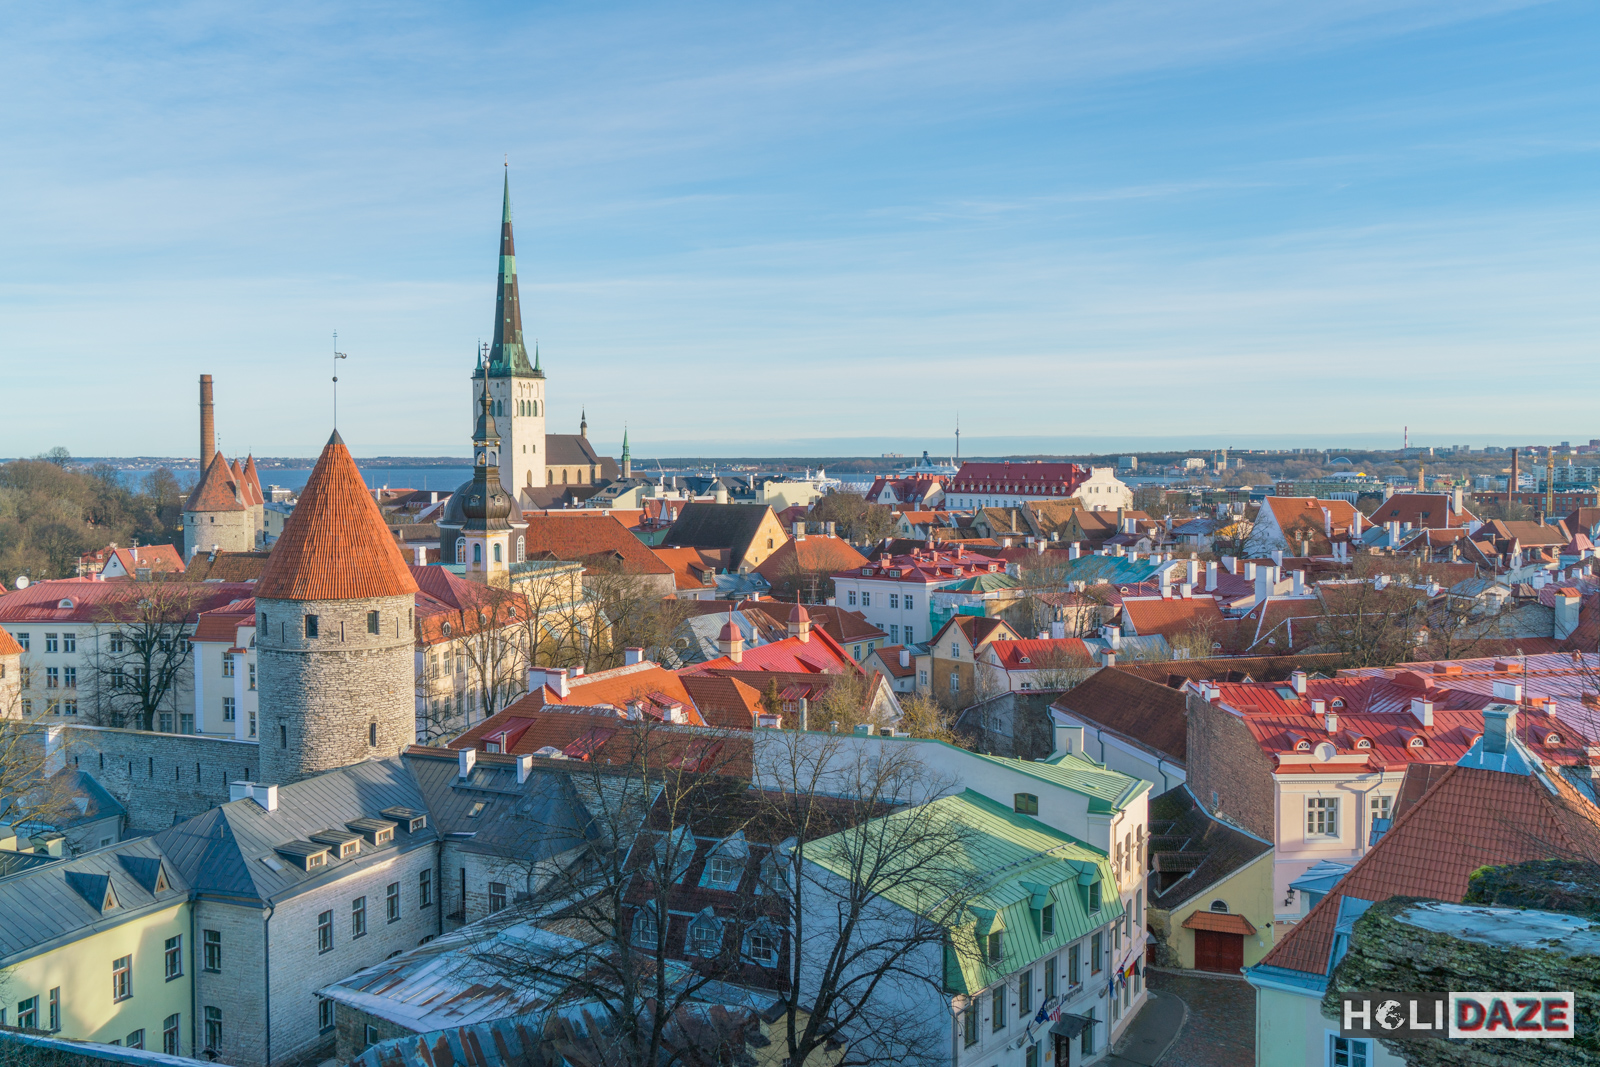 Look at that beautiful Tallinn skyline